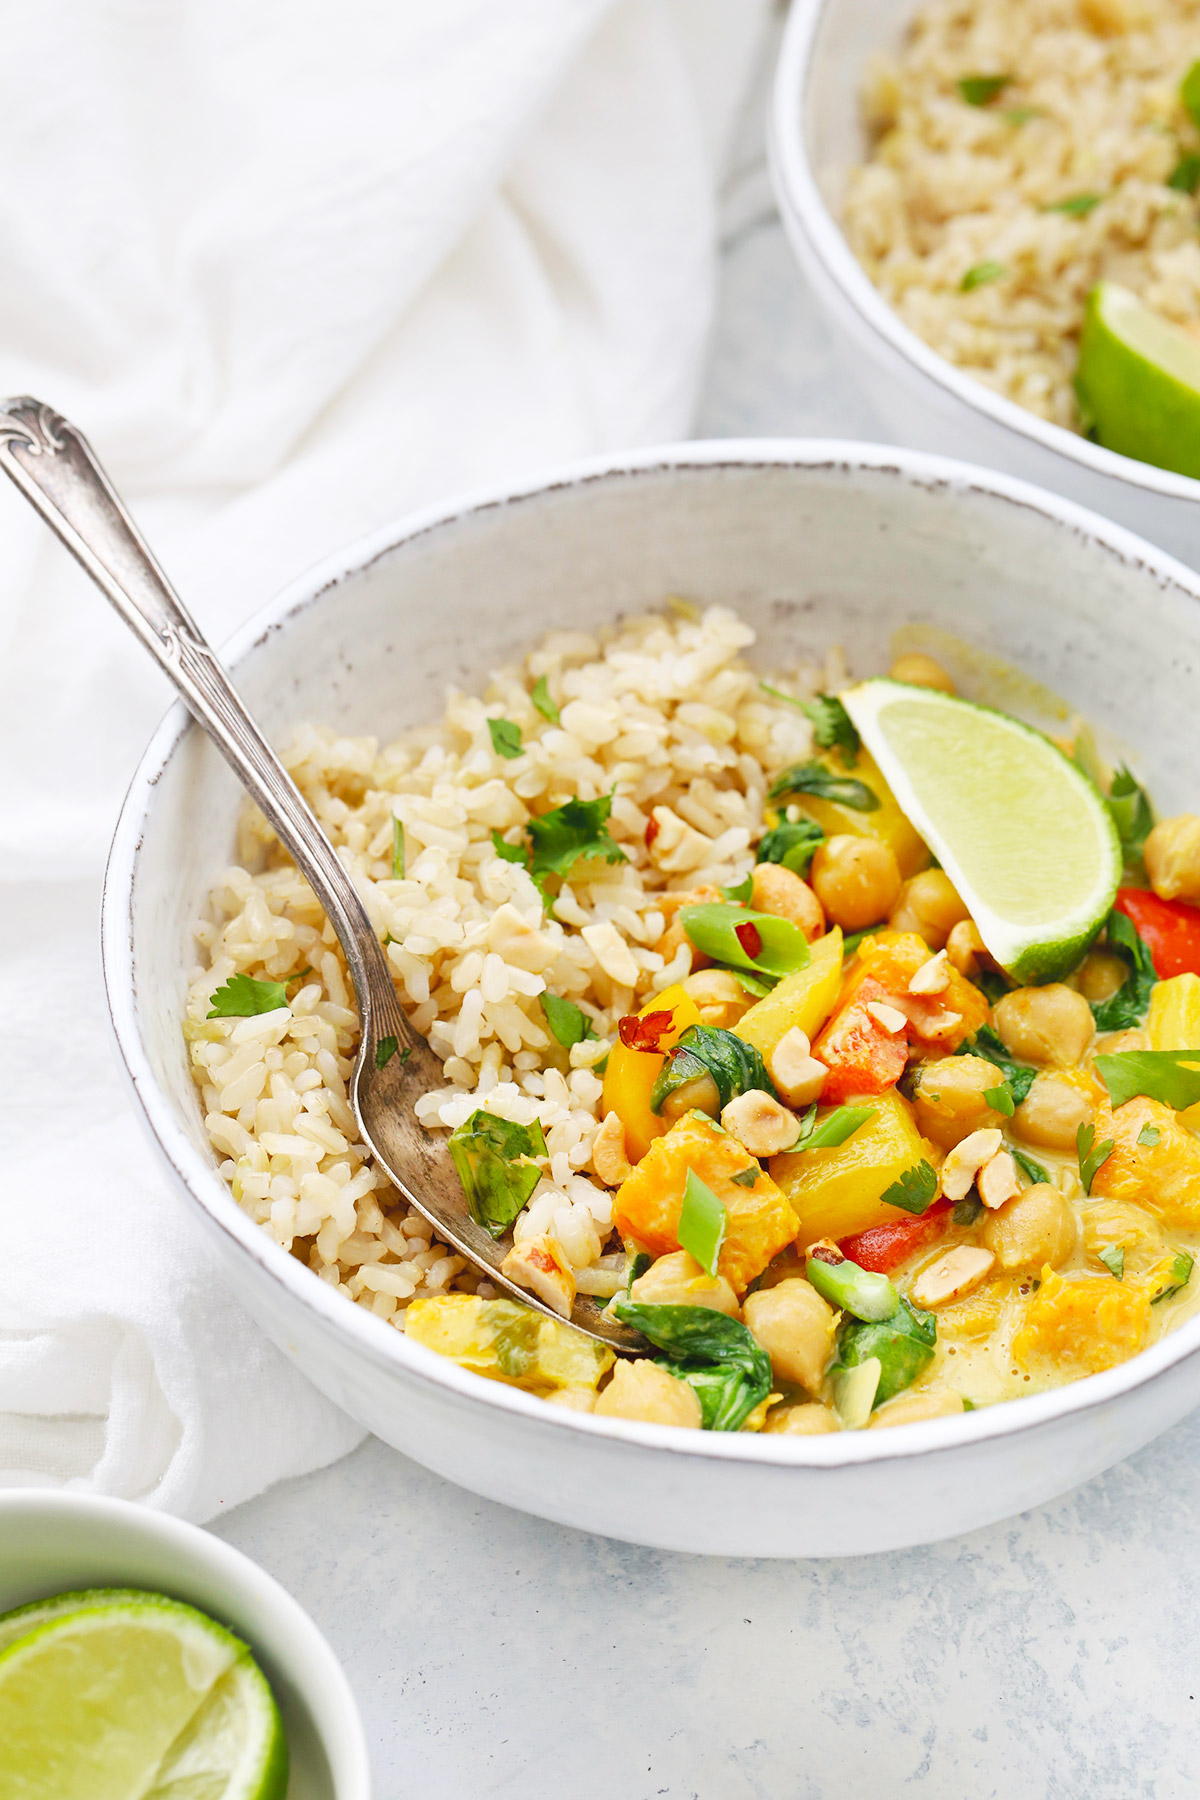 Vegan Butternut Squash Curry from One Lovely Life